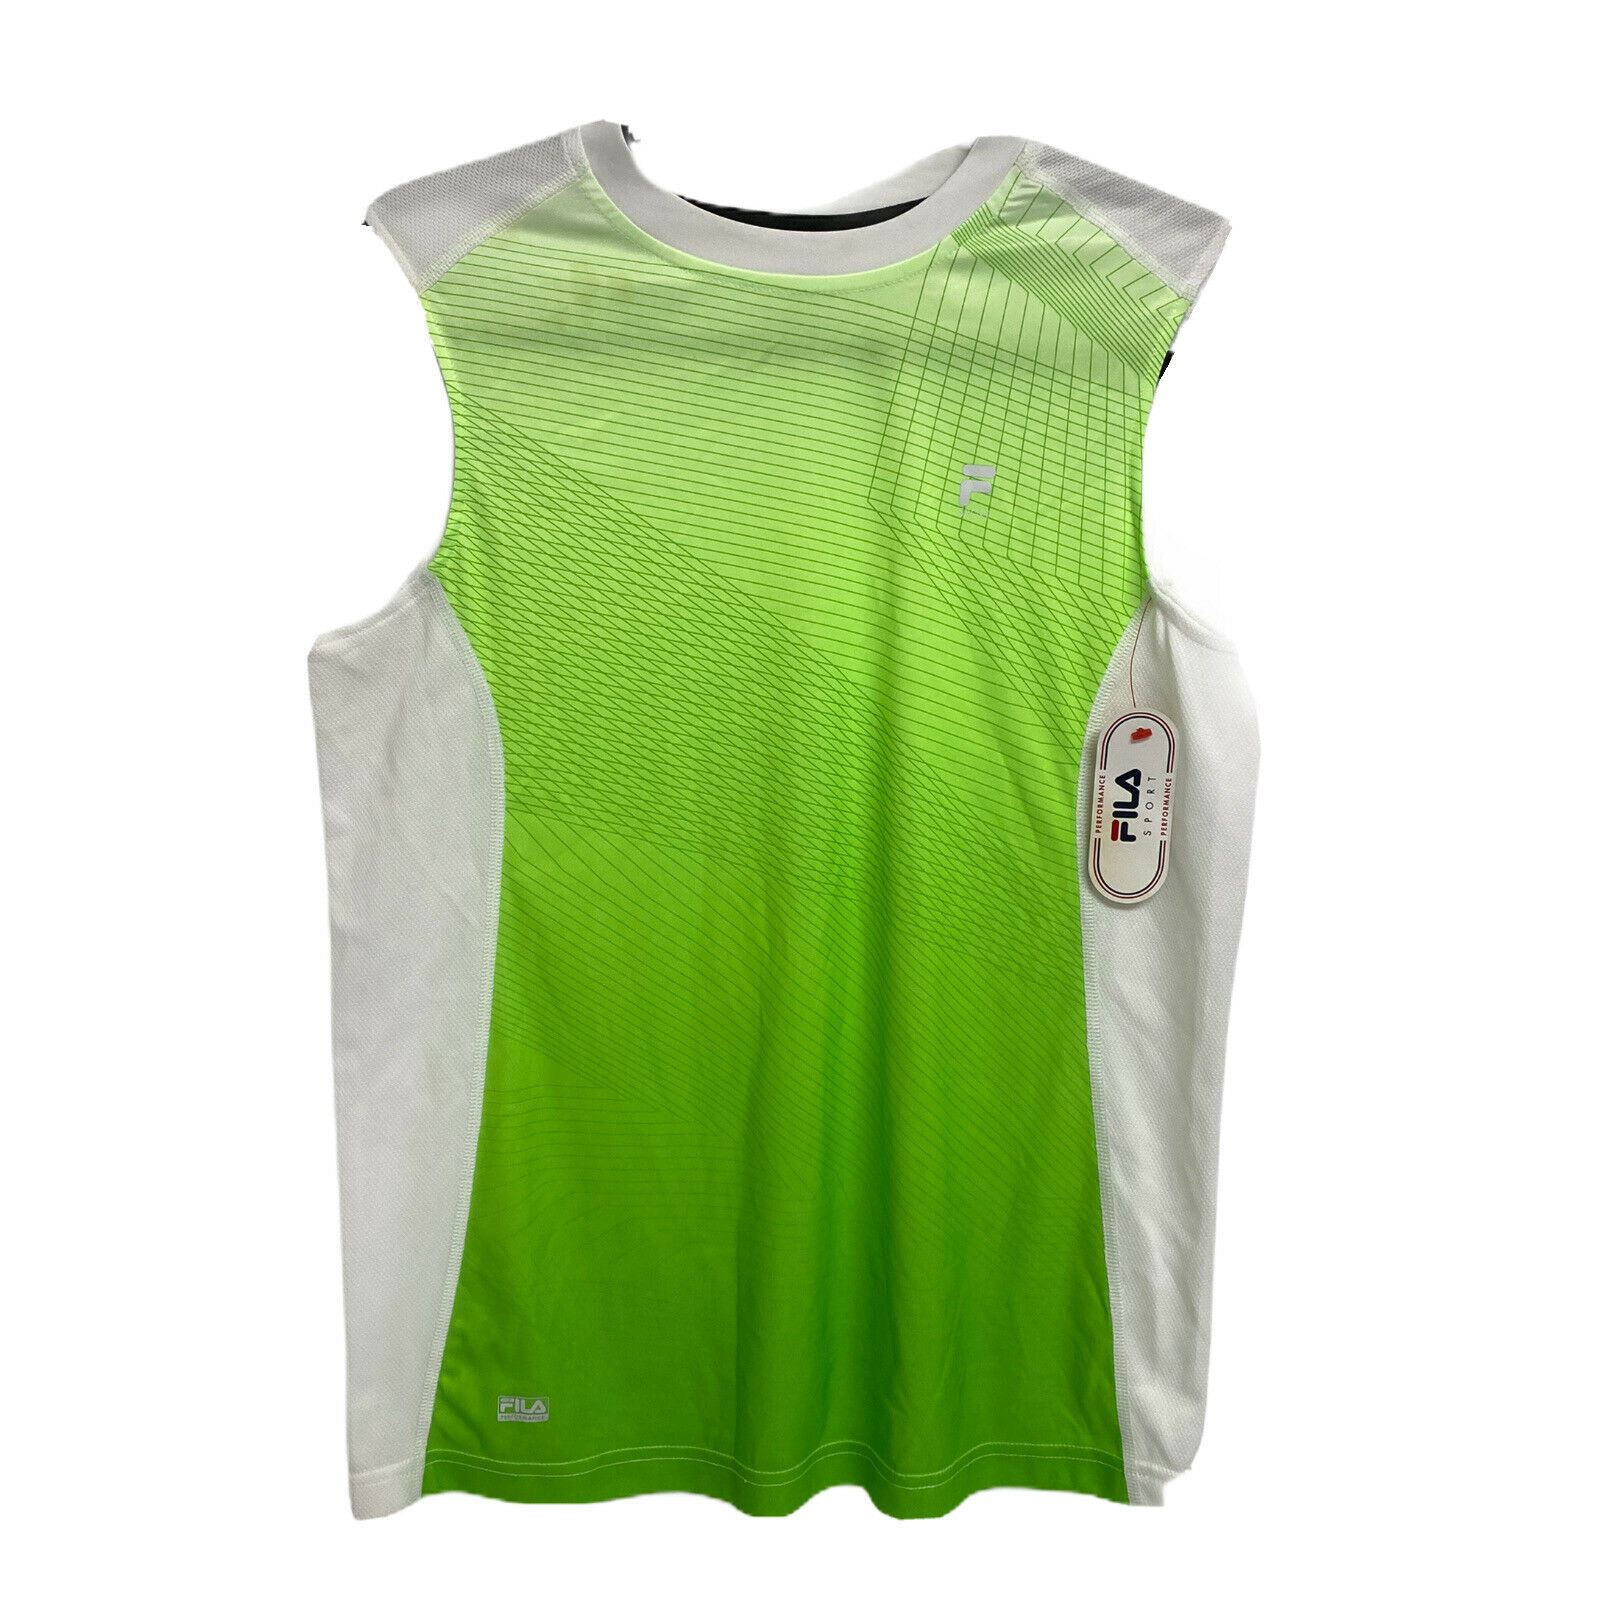 Primary image for FILA Performance sport youth boys t-shirt sleeveless white neon size XL 18-20